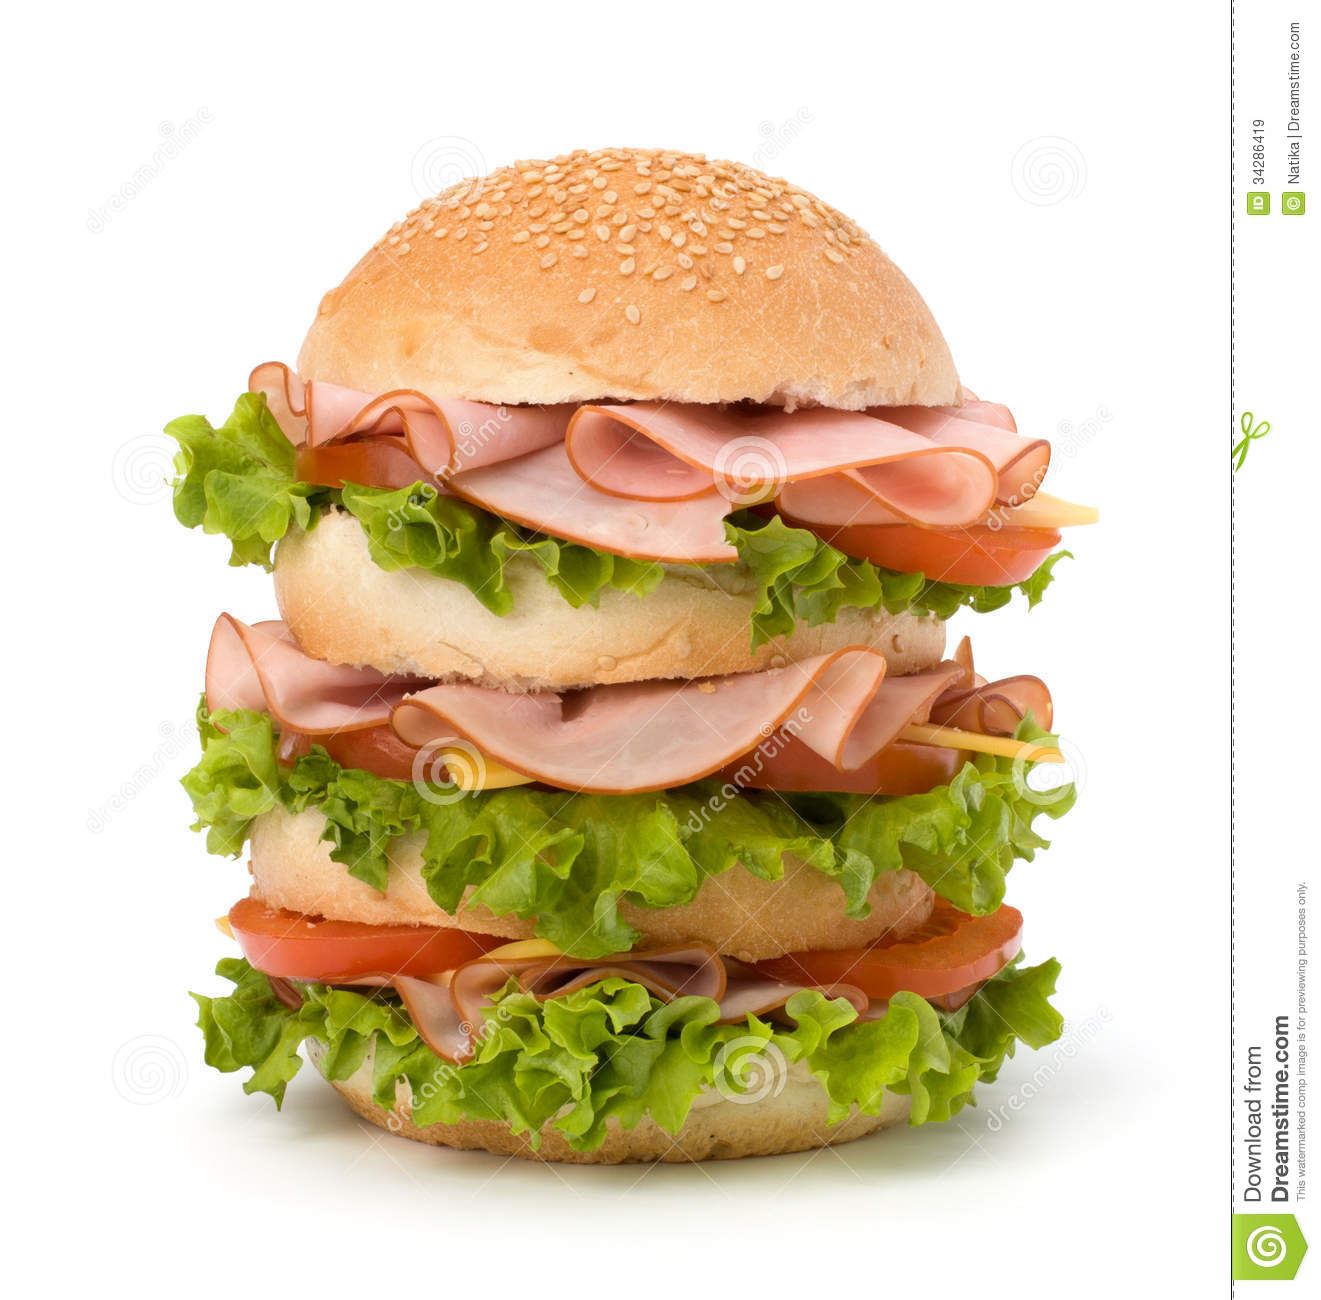 Junk Food Hamburger Royalty Free Stock Images - Image: 34286419